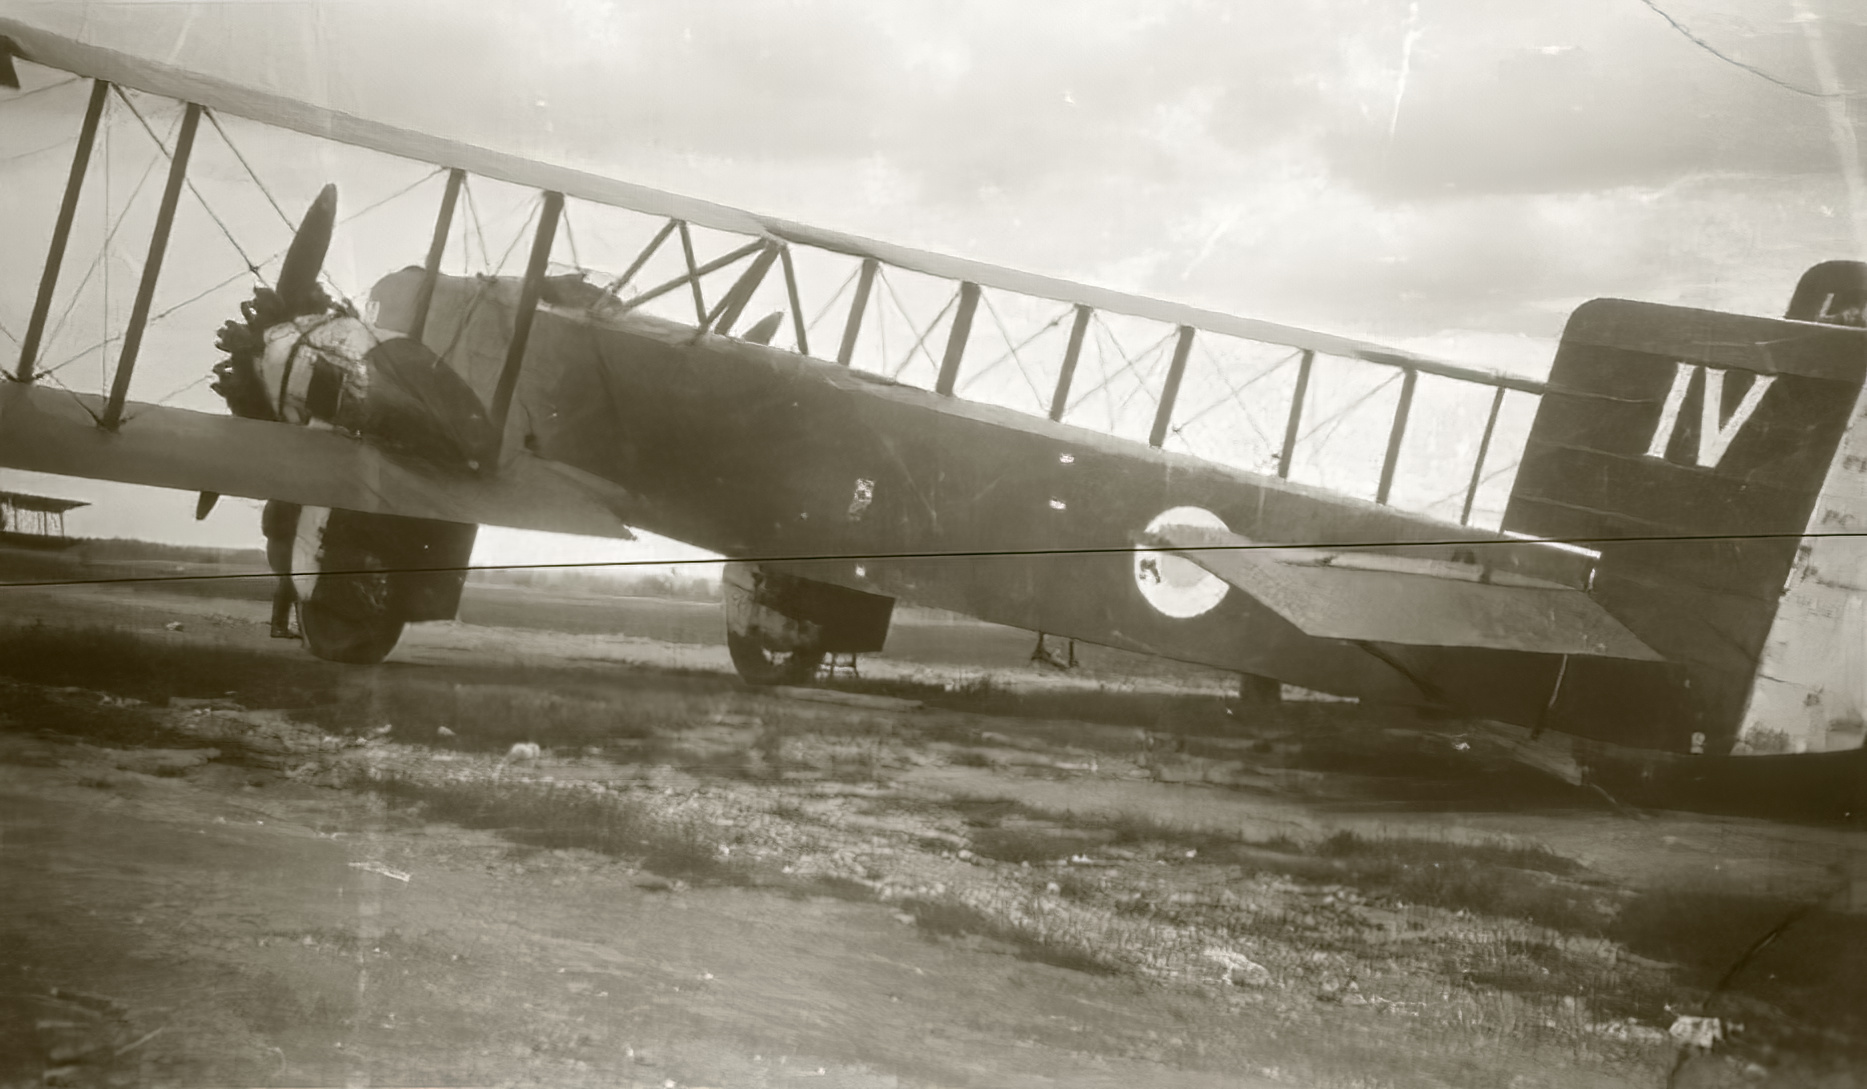 French Airforce Liore et Olivier LeO 20 left abandoned after the fall of France 5th Jul 1940 ebay 02